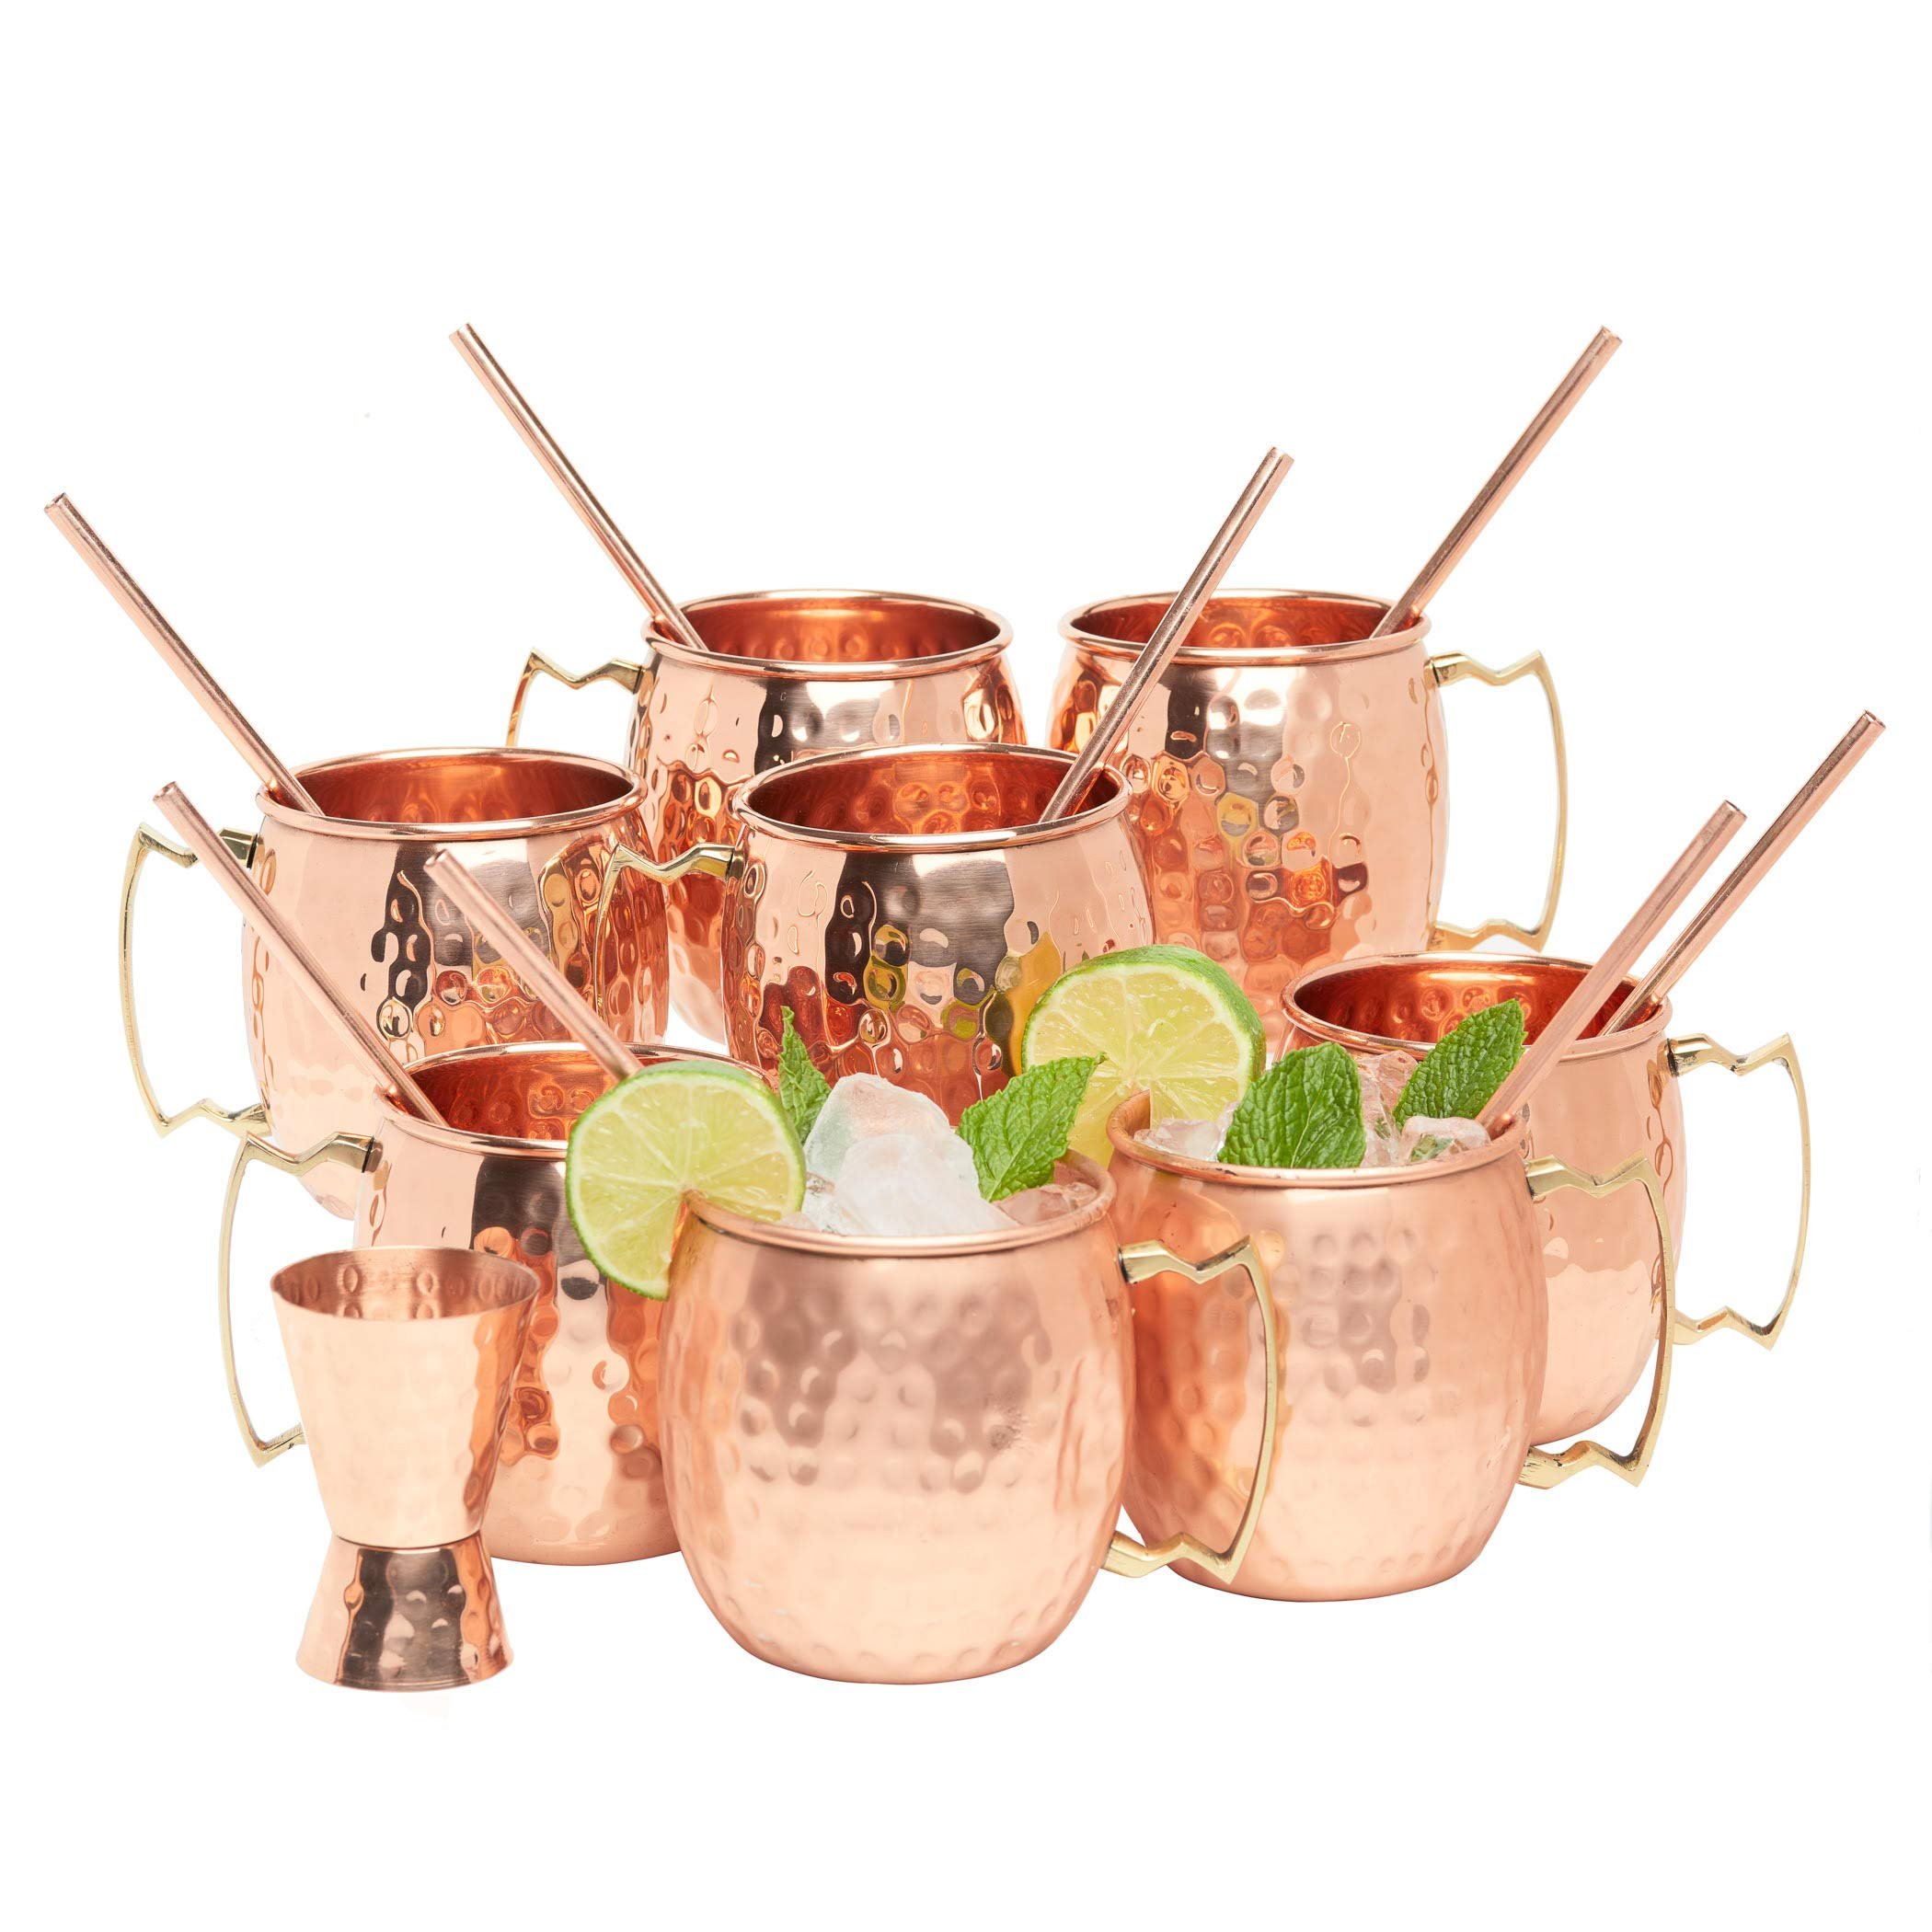 Kitchen Science Moscow Mule Copper Mugs 16 Ounce with 8 Straws and Jigger Set by Kitchen Science